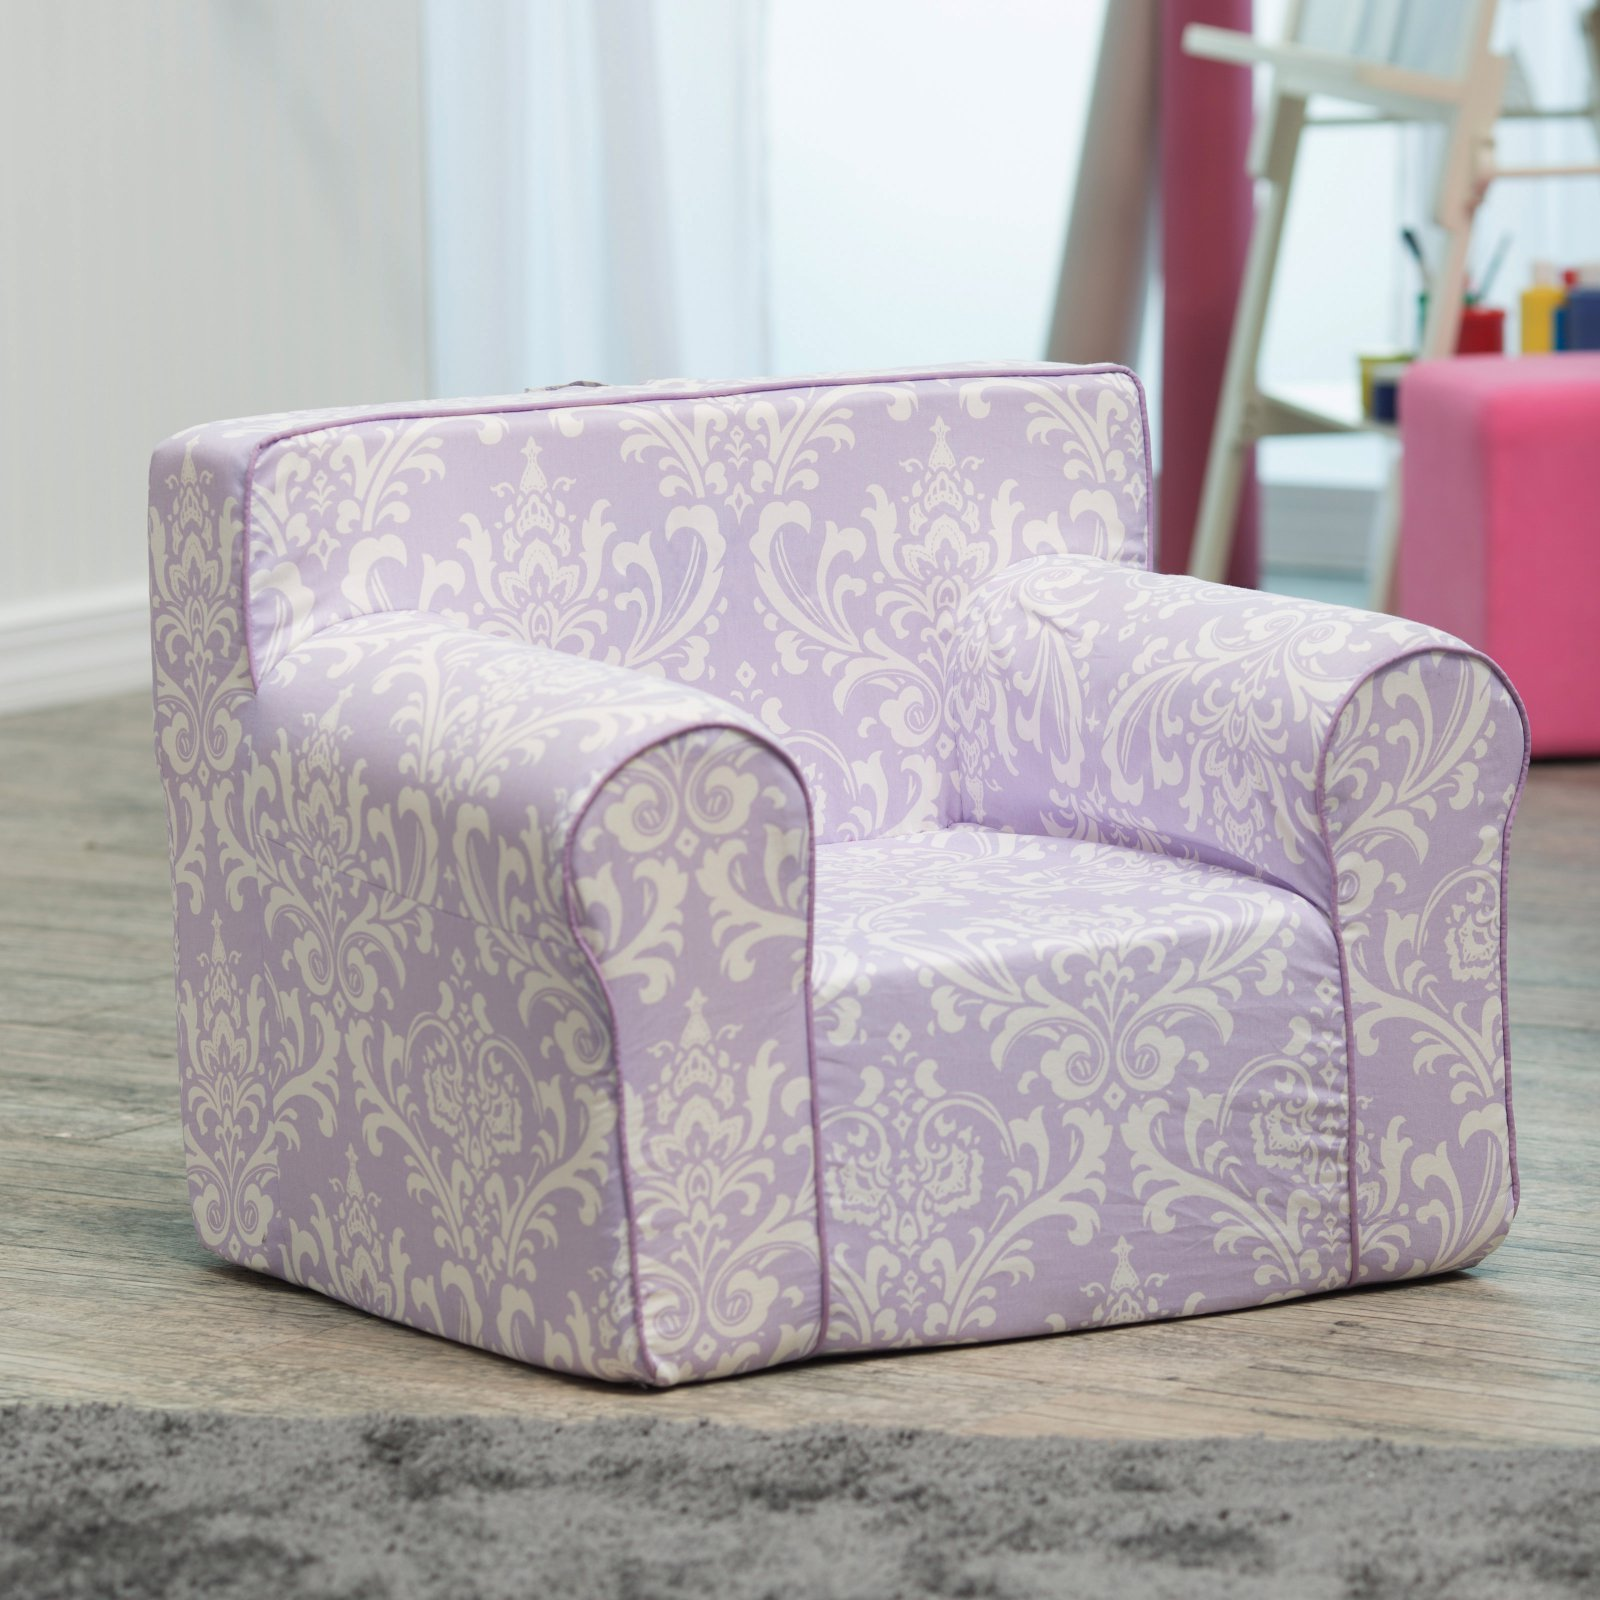 Here and There Kids Chair - Purple Damask